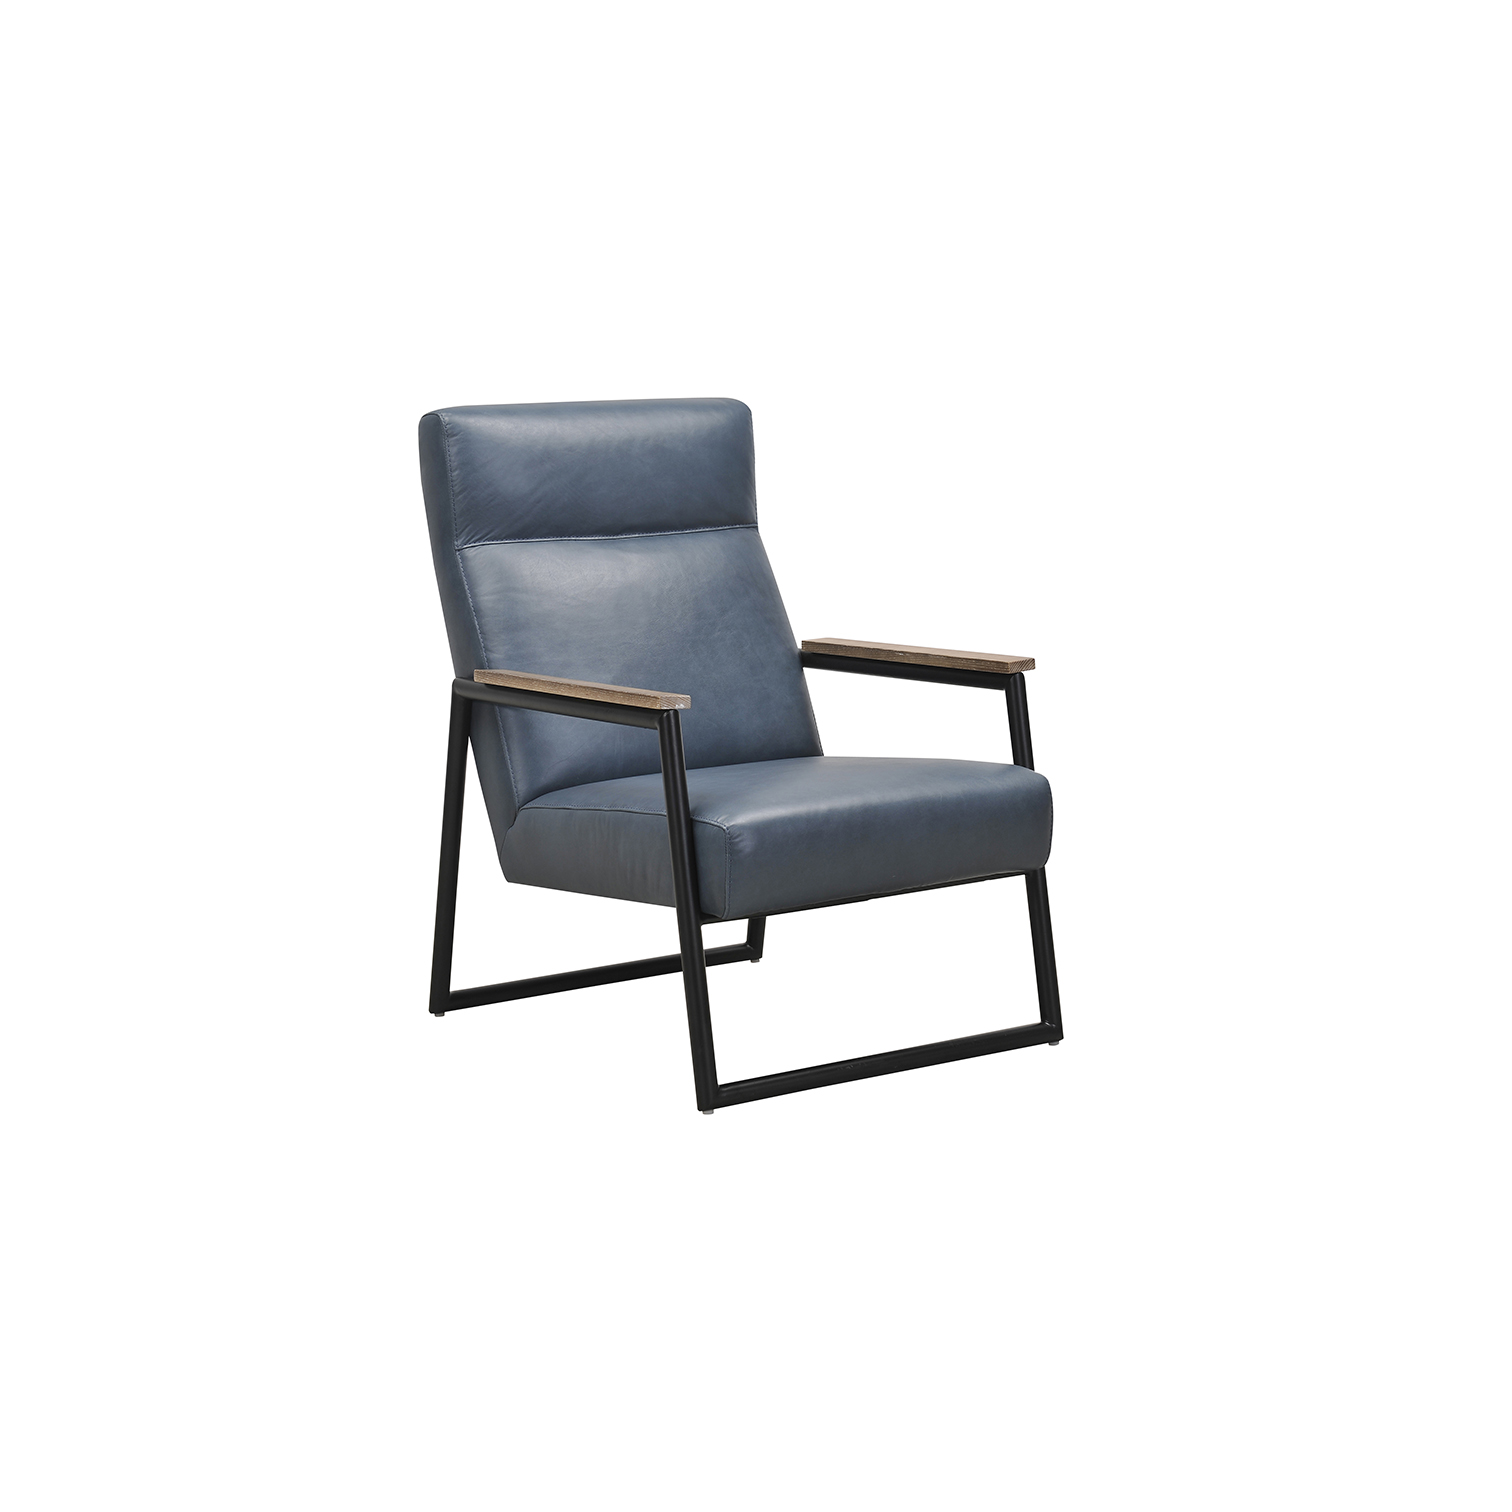 Blue Leather Armchair - Park Furnishings